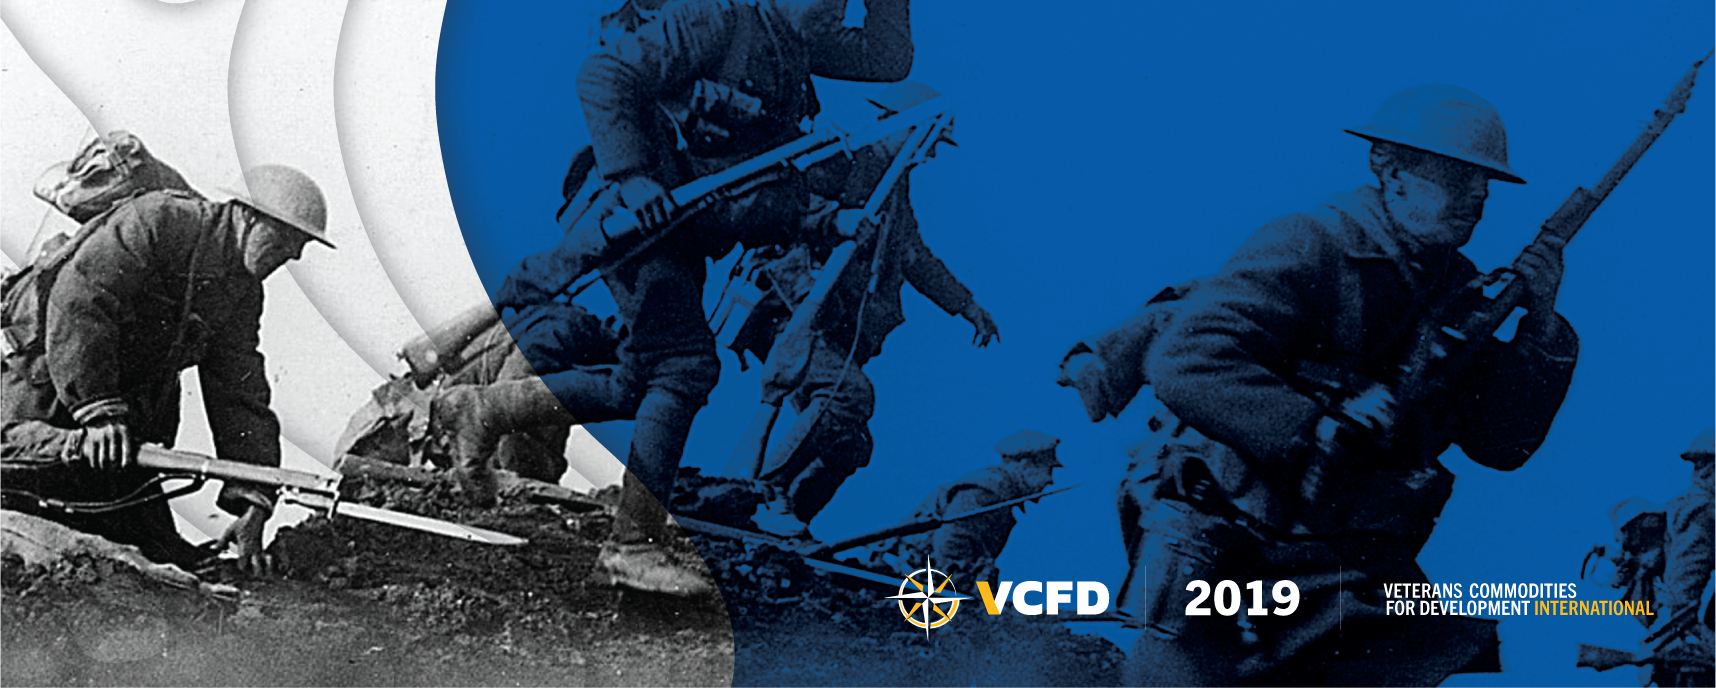 VCFD Cover 2